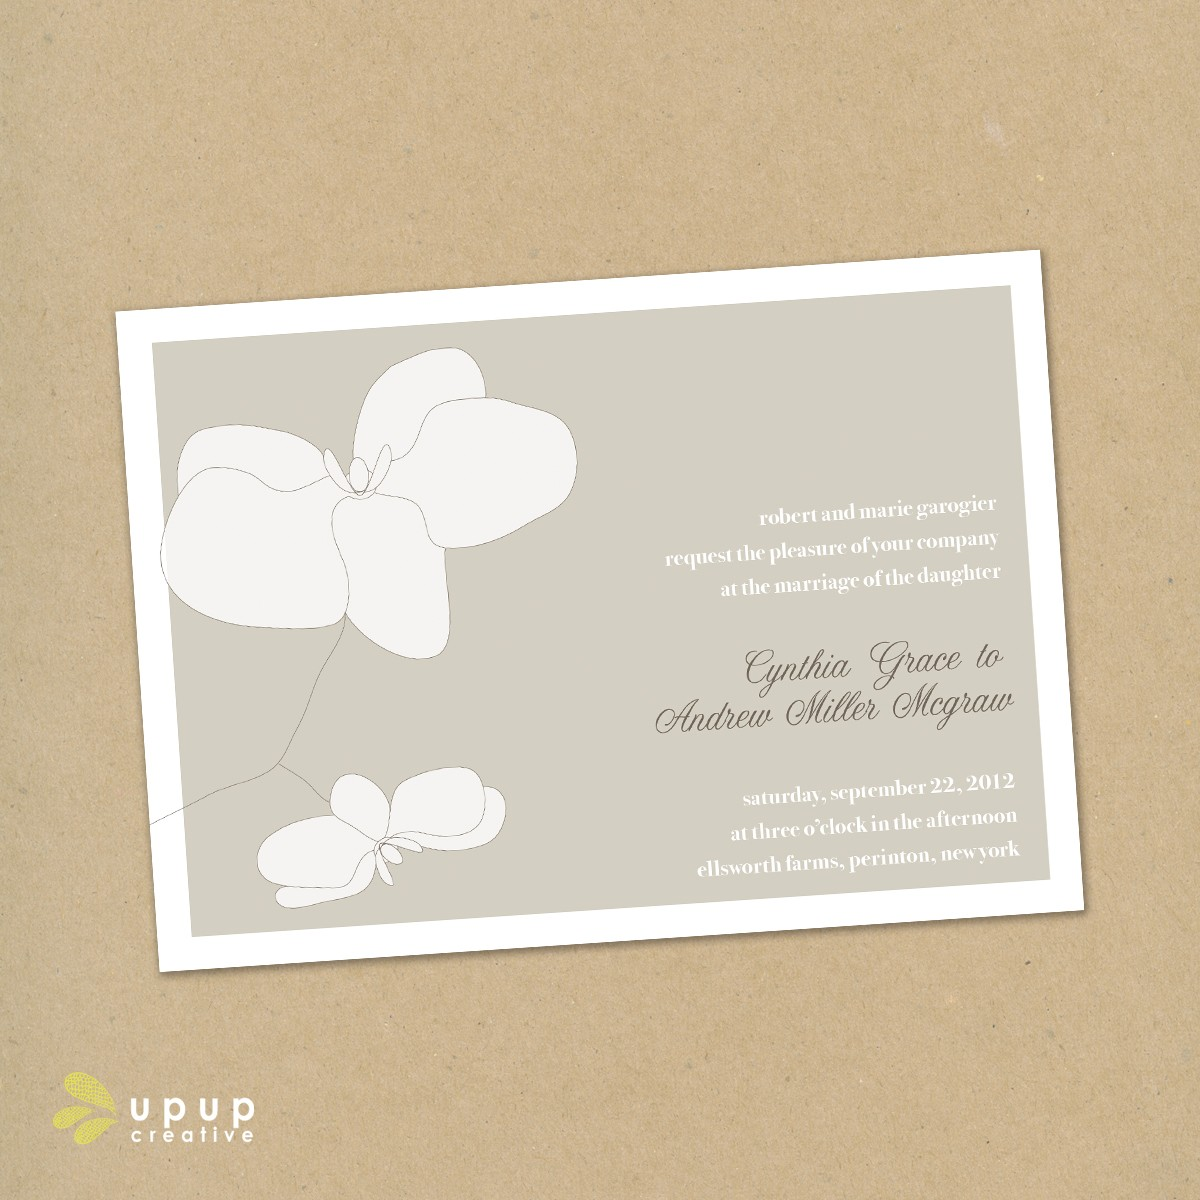 Eco Friendly Weding Invitations 021 - Eco Friendly Weding Invitations